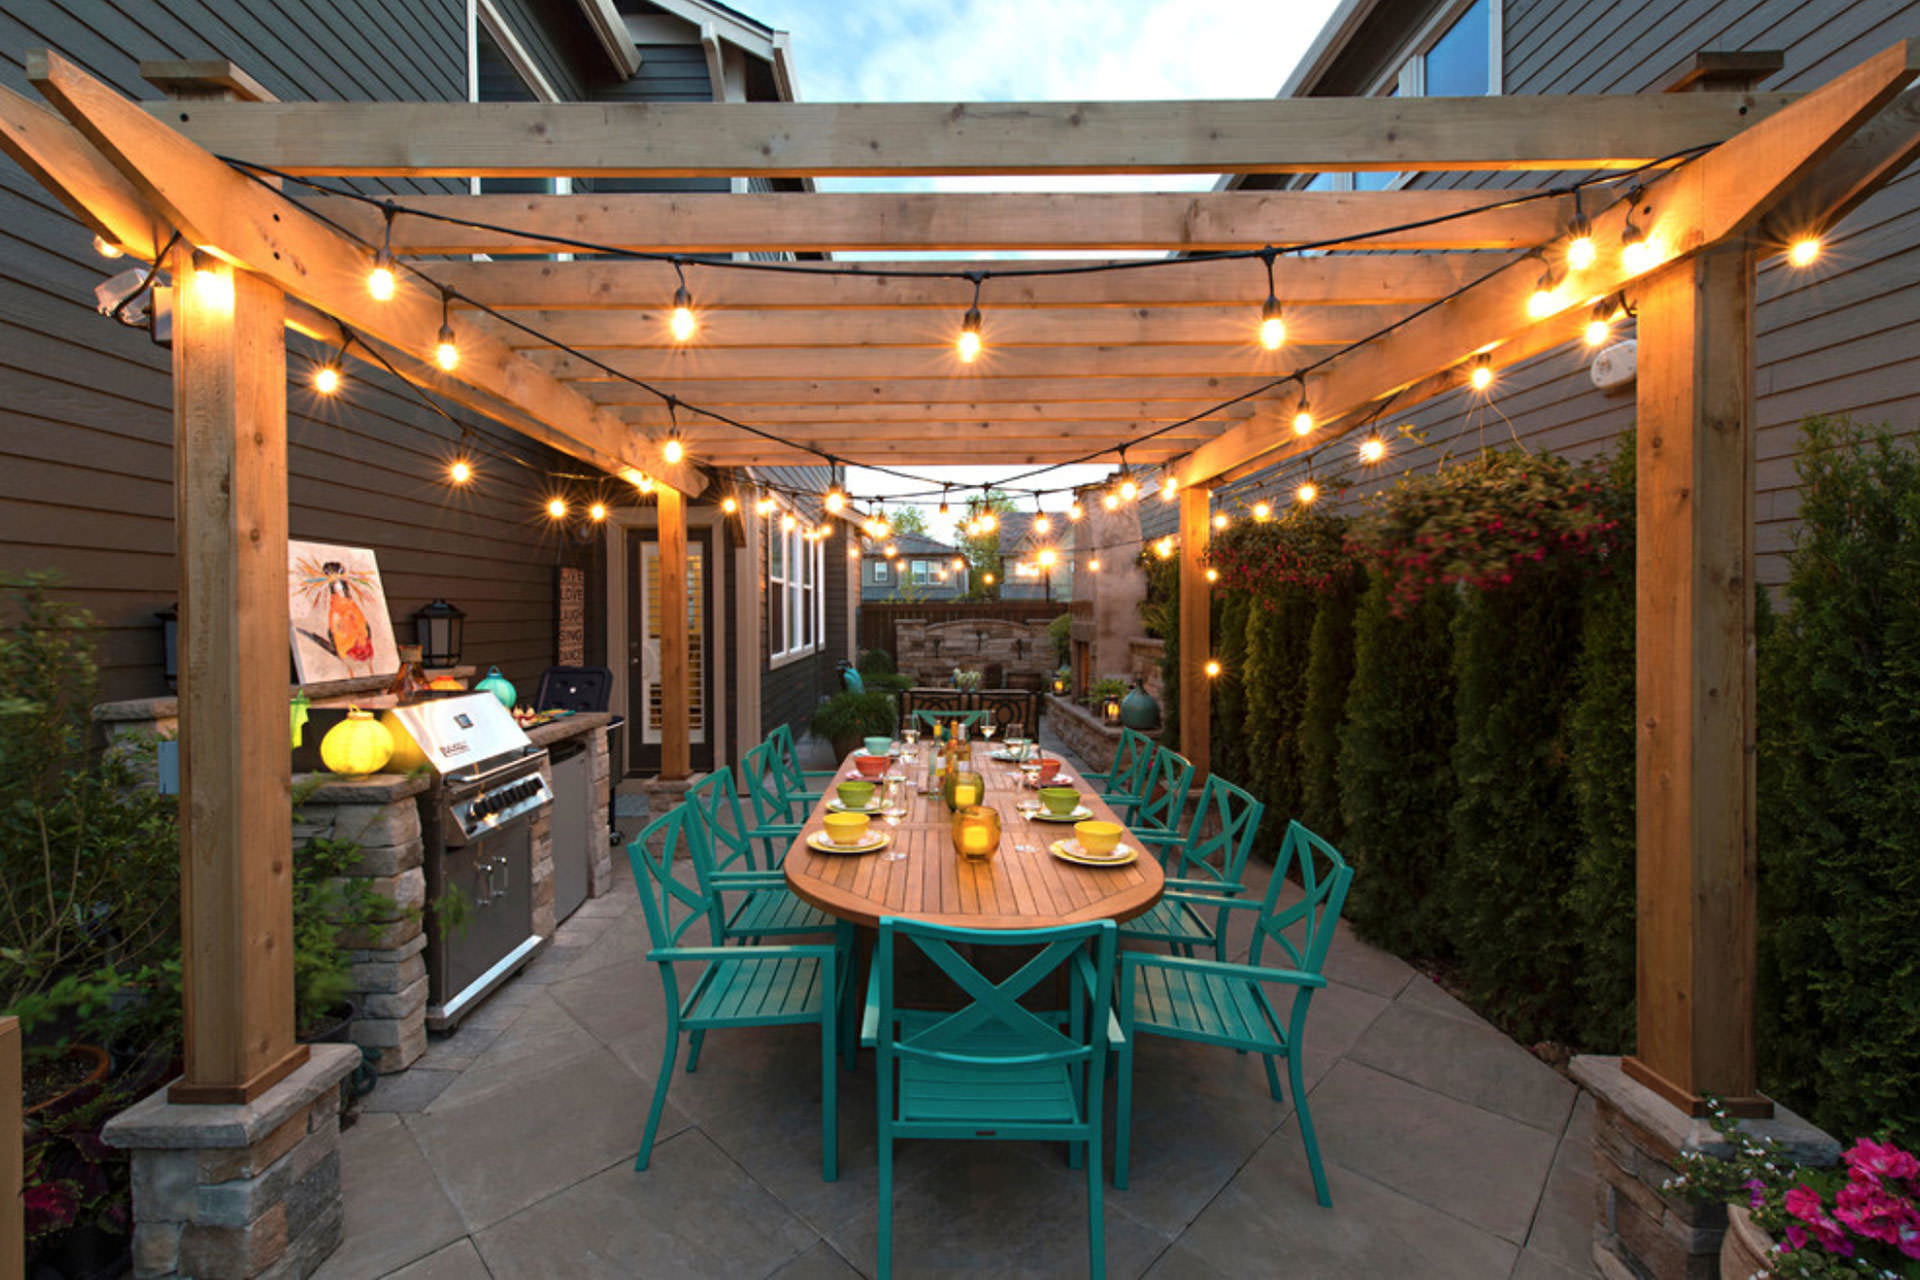 Five Pergola Lighting Ideas to Illuminate Your Outdoor Space - Outdoor Pergola Lights